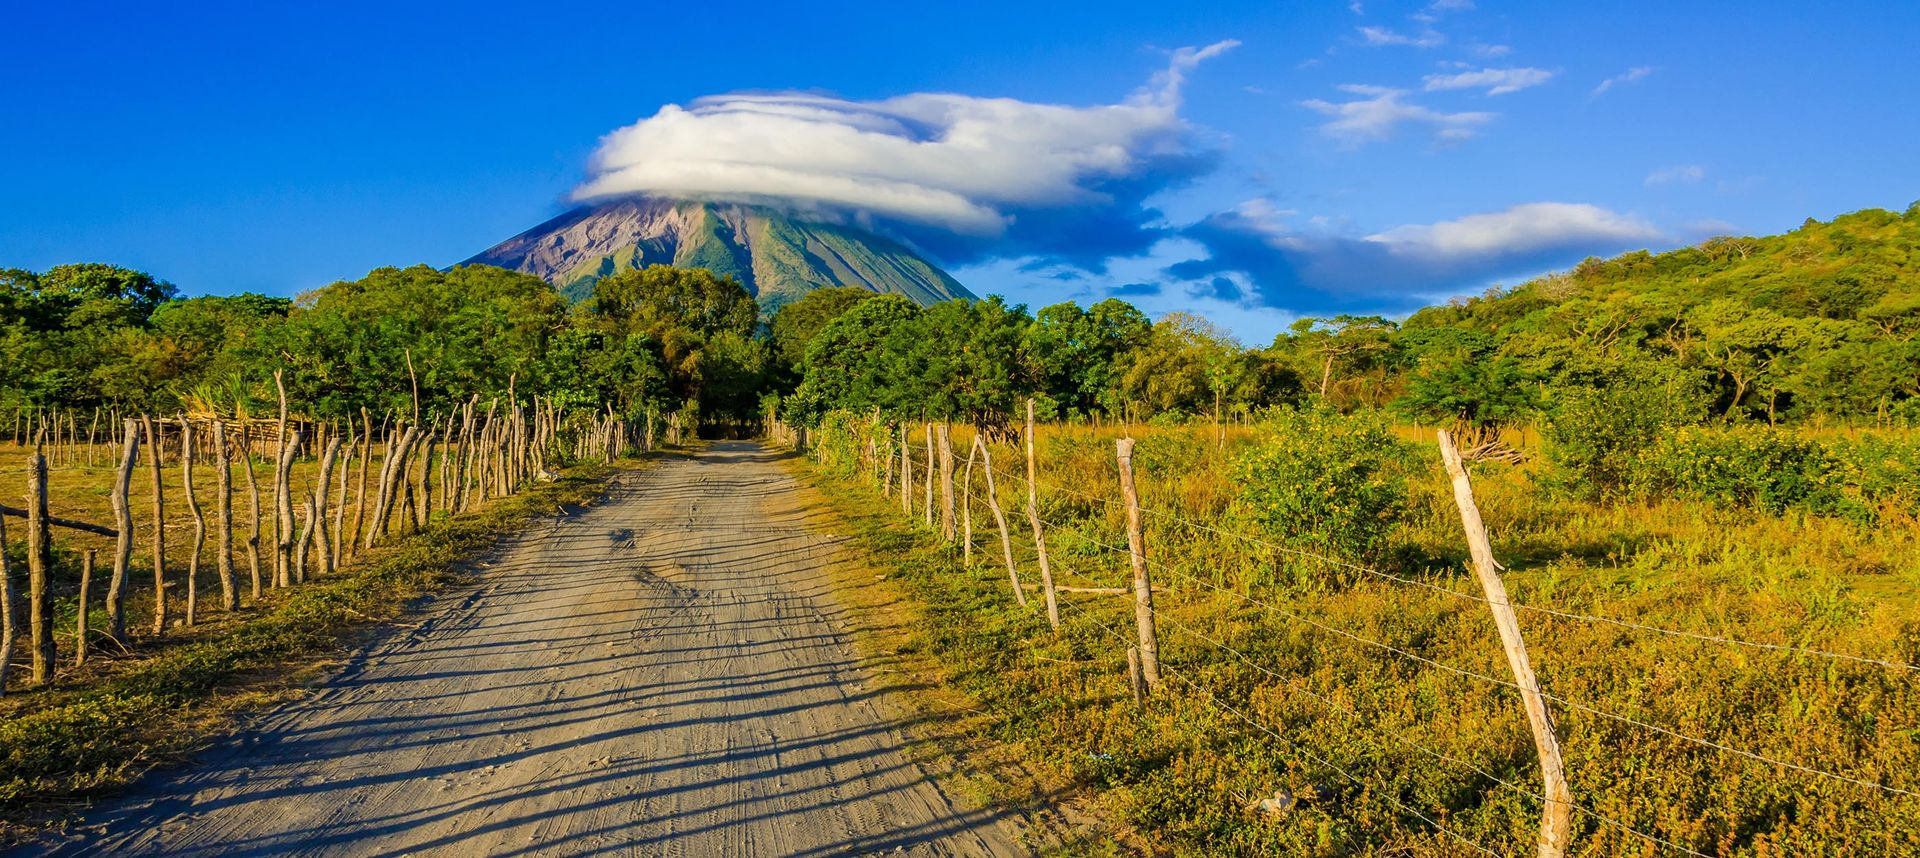 Volcanic Eden: Going with the flow on the islands of Nicaragua